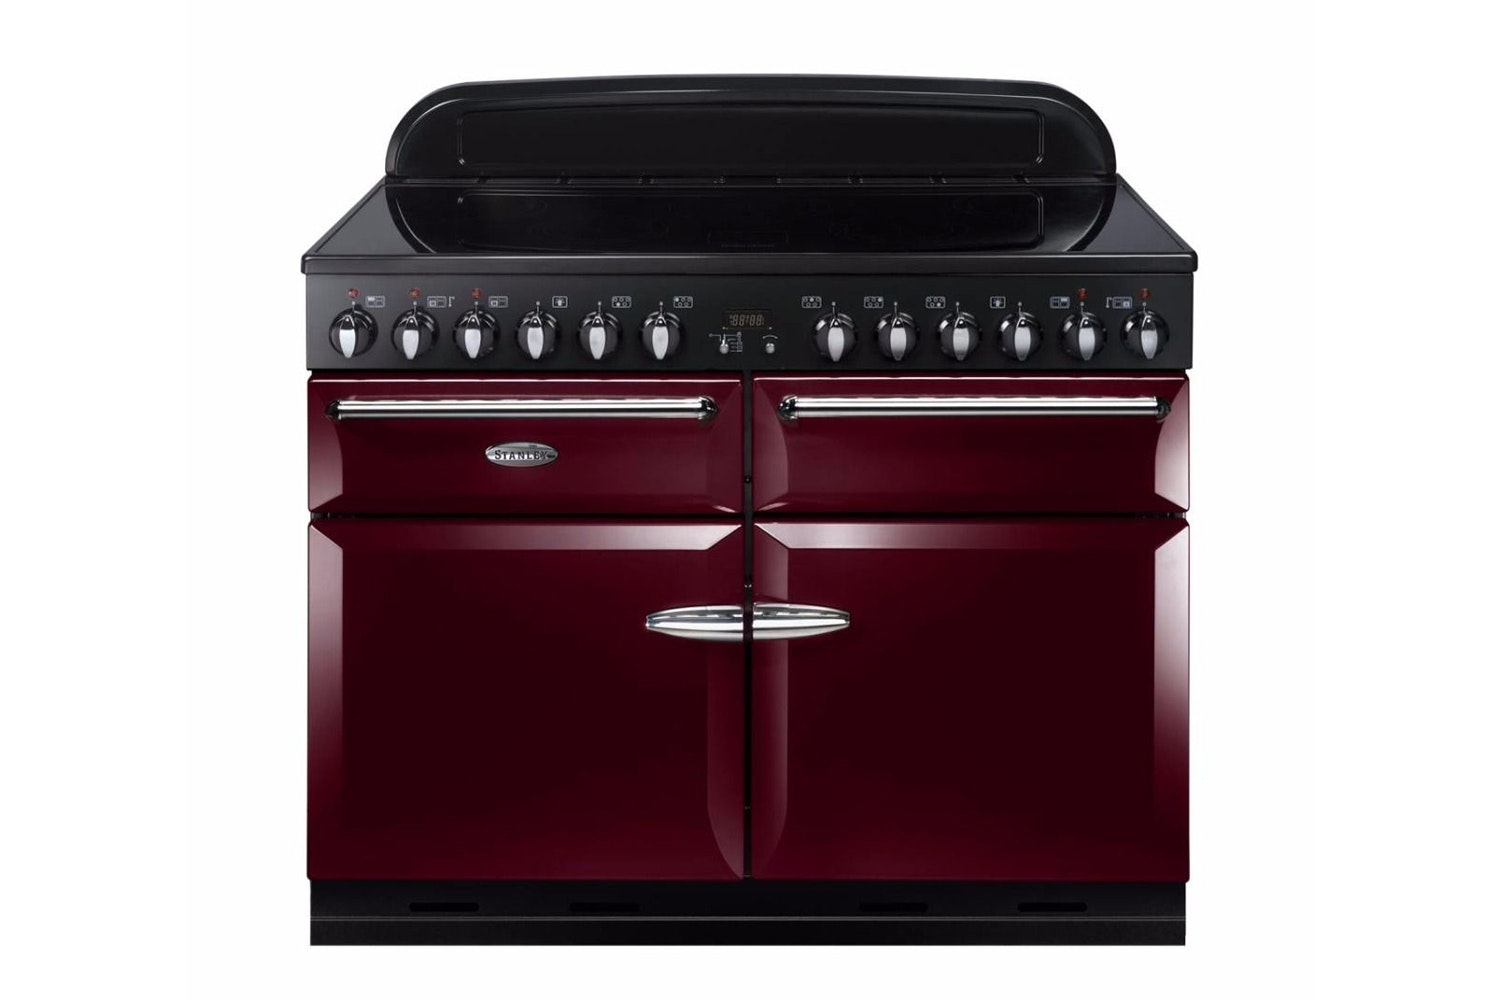 Stanley Supreme 110cm Electric Range Cooker | SSUP110EICY/C | Red